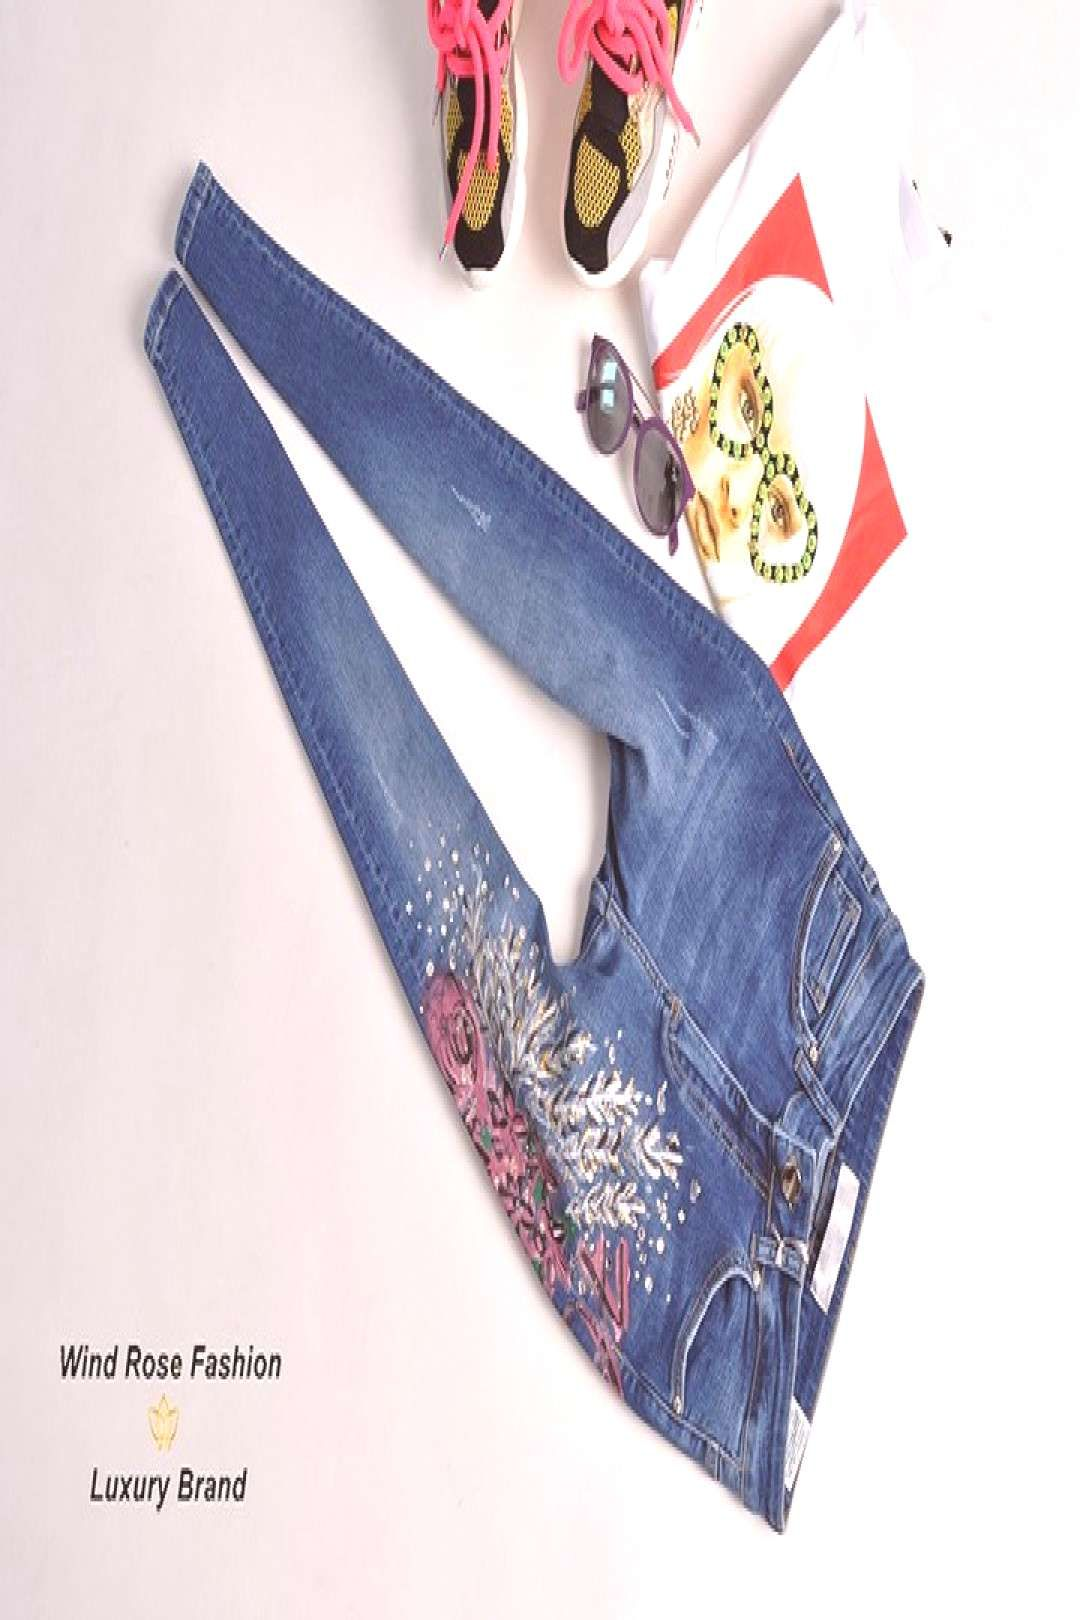 #rawdenim #fashion #luxury #brand #text #that #says #wind #rose text that says Wind Rose Fashion Luxury Brand BrandYou can find Raw denim and more on our website.text that says Wind Rose Fashion Luxury Brand Brand